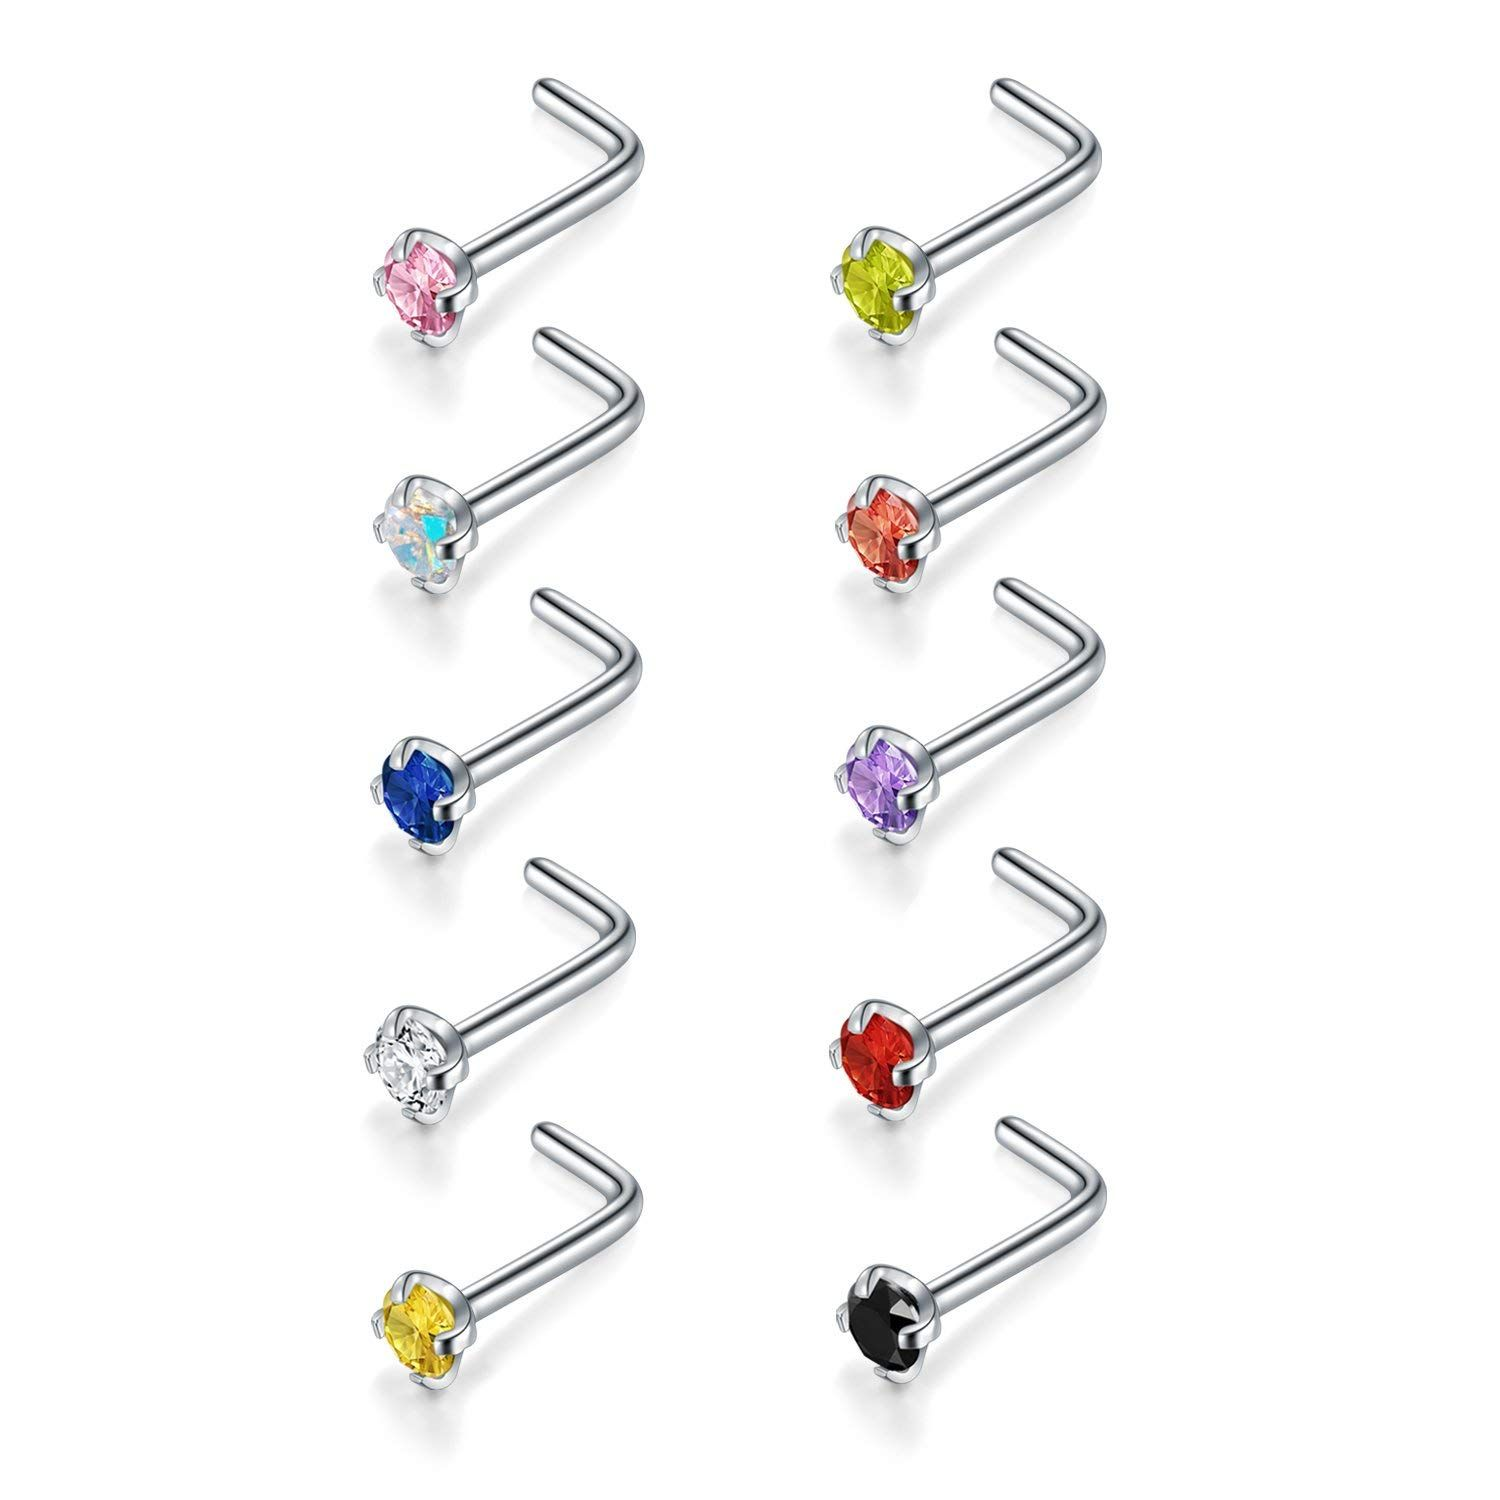 J hook nose piercing  QWALIT G LStainless Steel CZ Nose Rings Stud L Shaped Bend